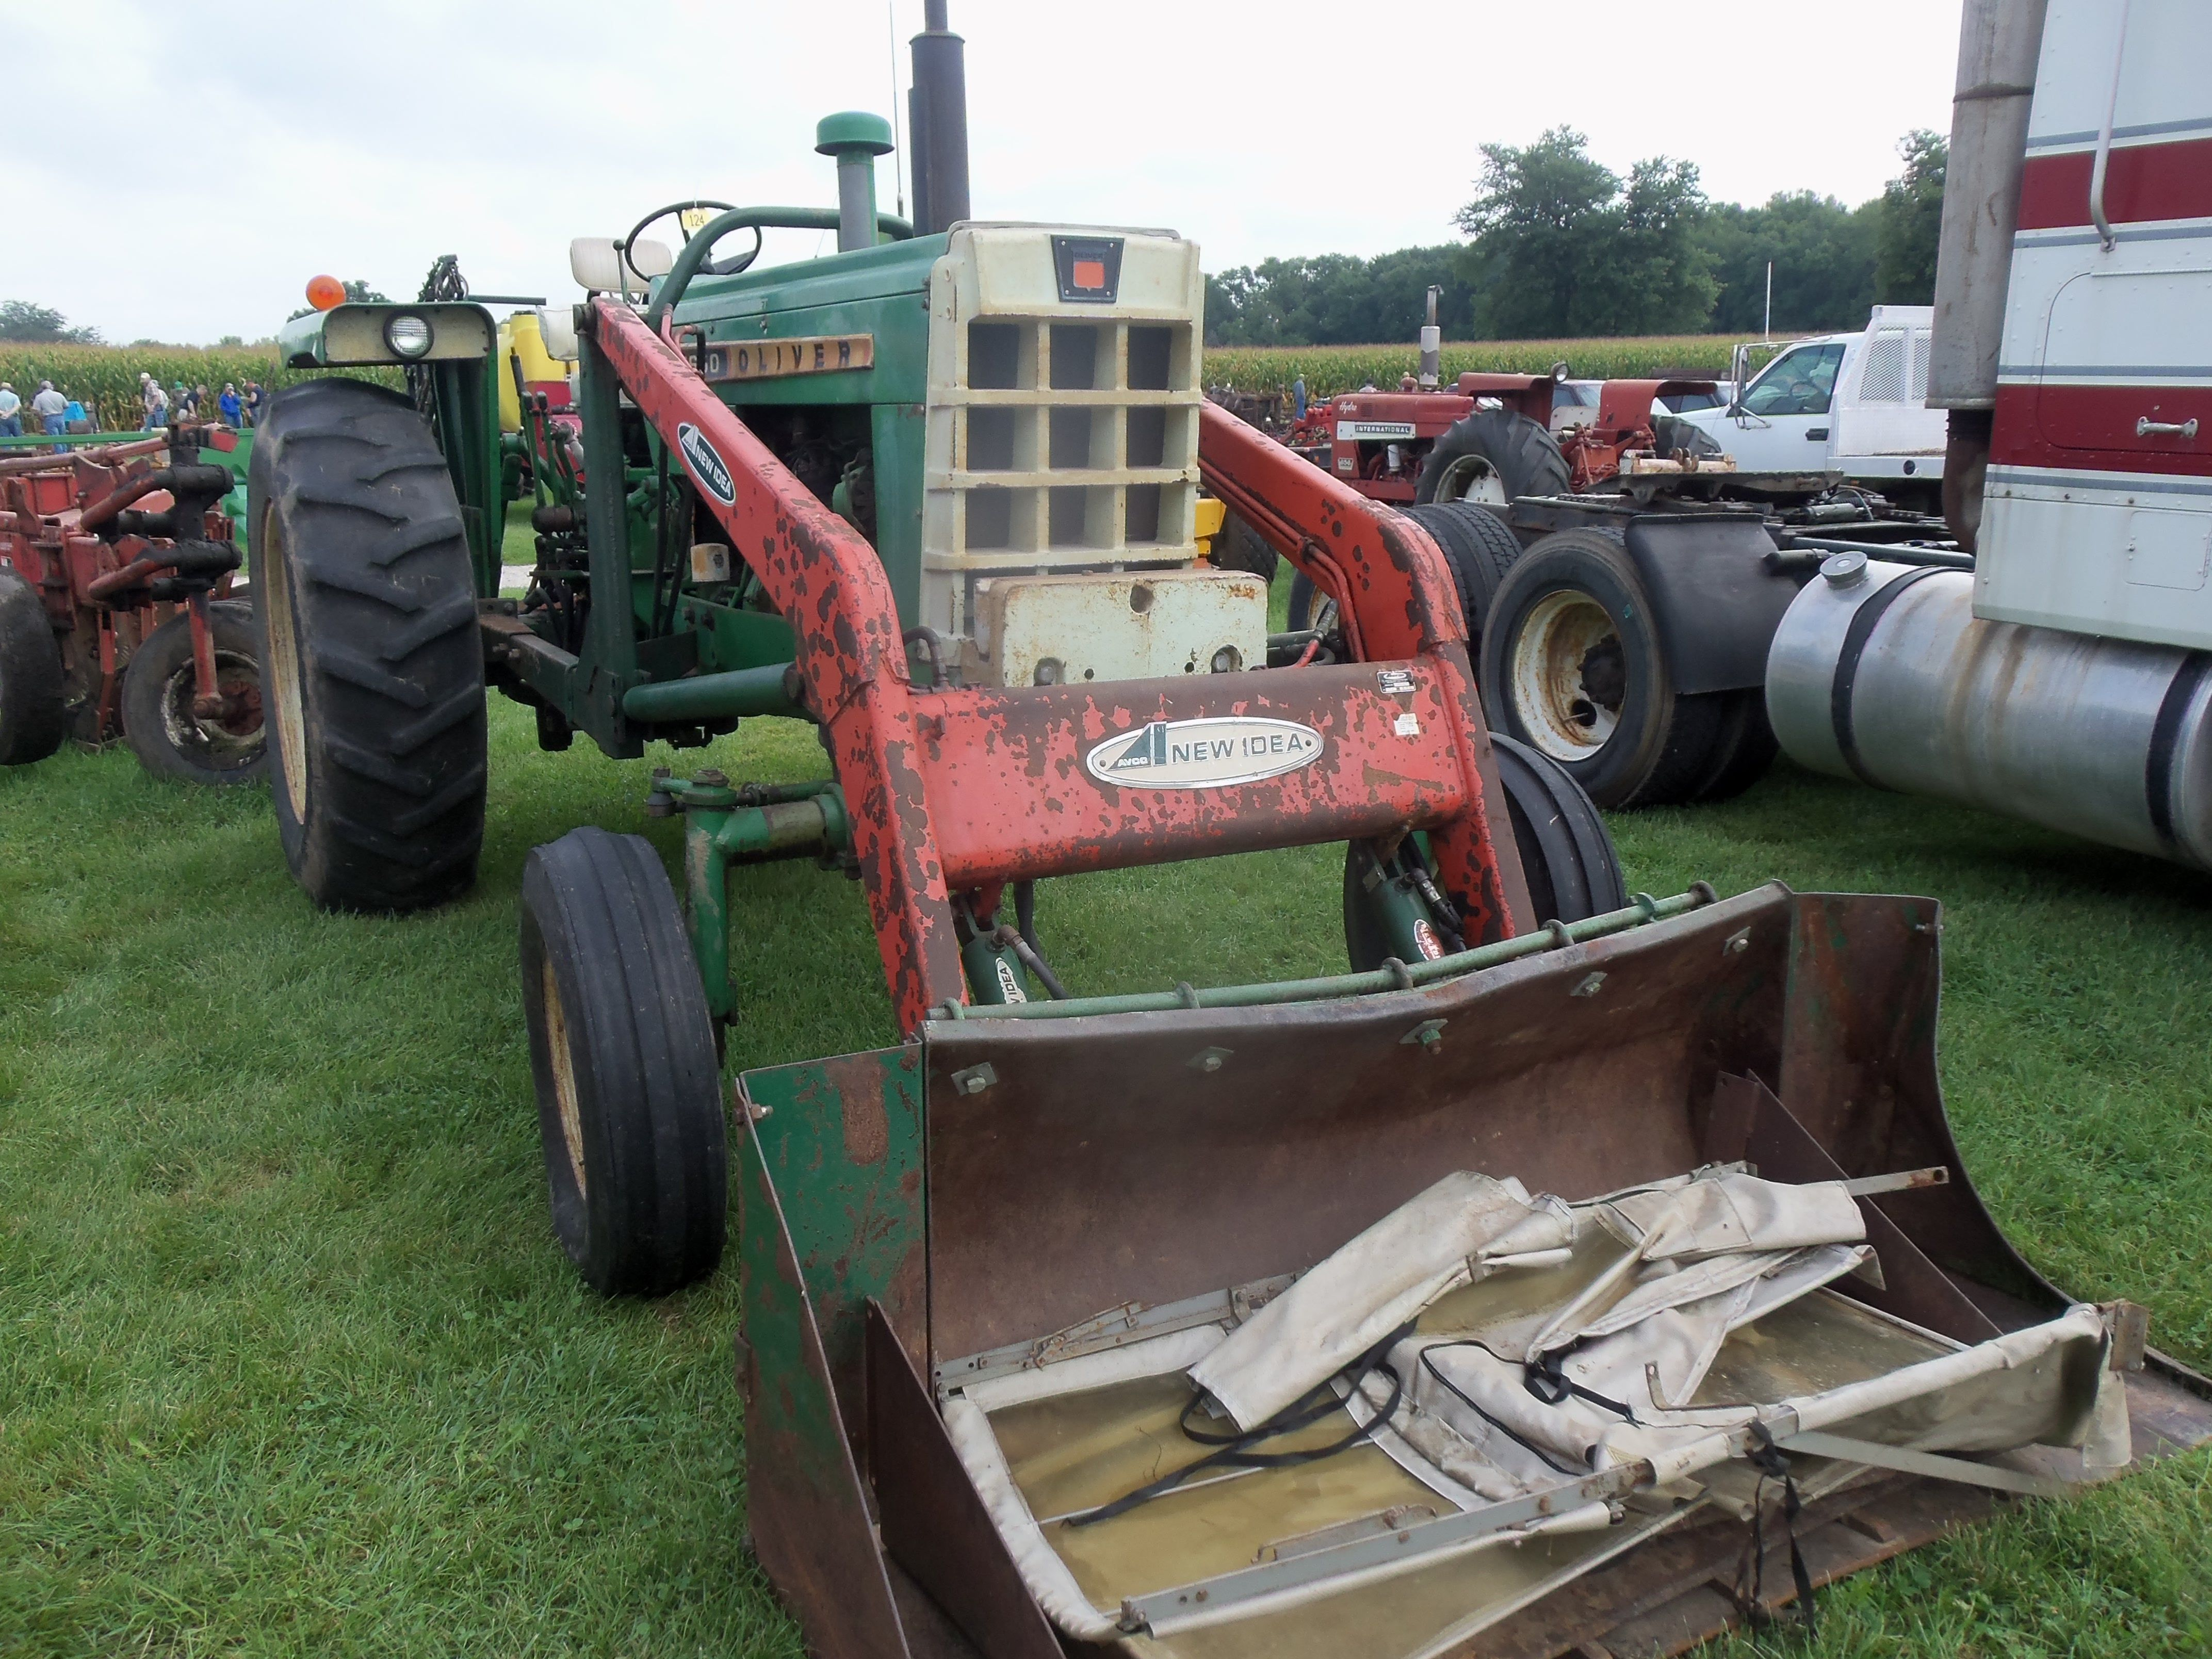 66hp Oliver 1650 with New Idea loader   Oliver Tractors